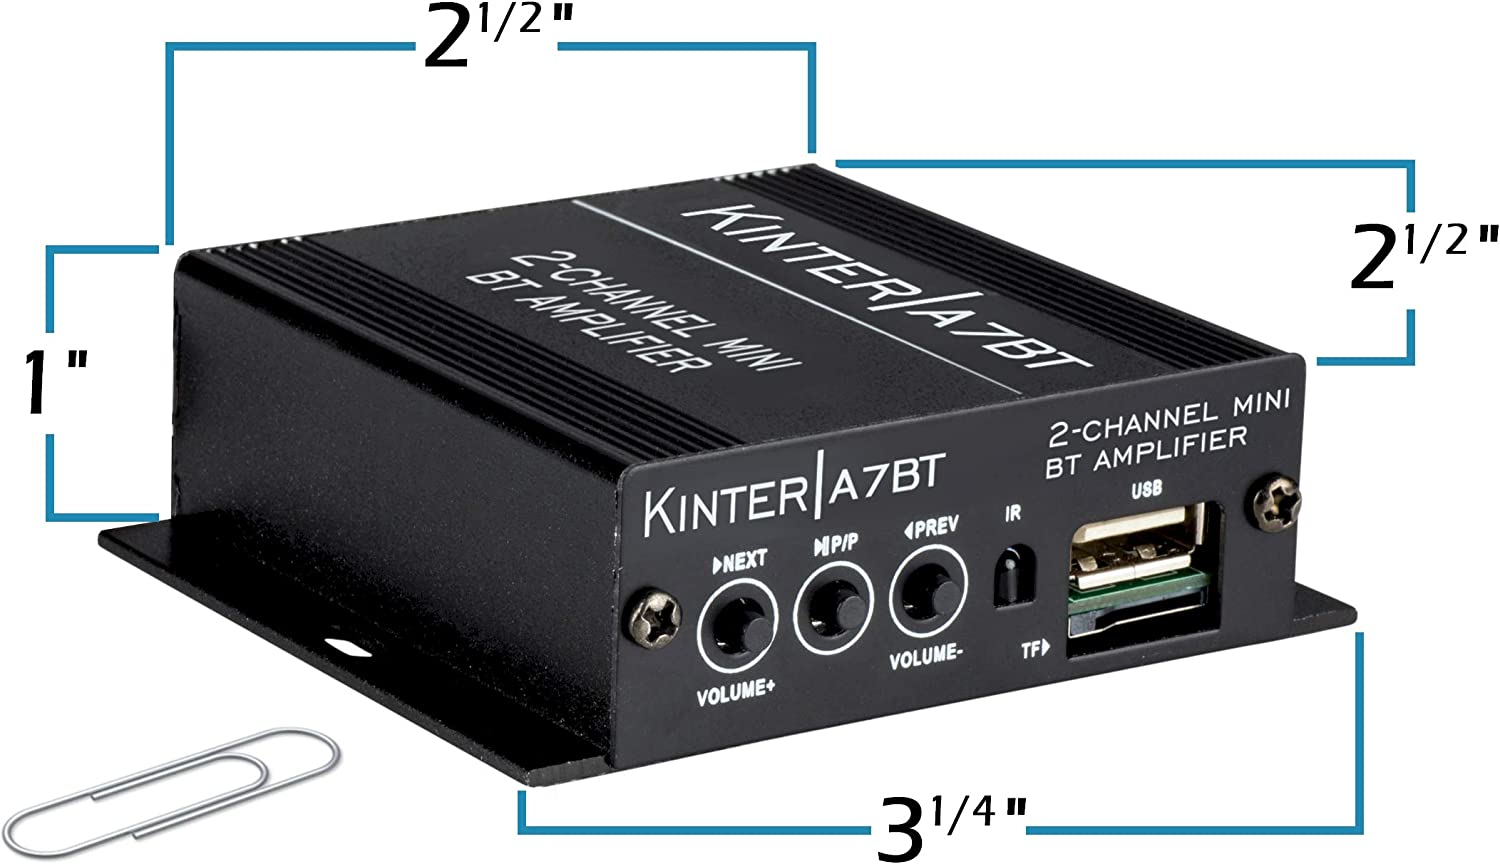 Includes 12V Power Supply Kinter A7BT 2-Channel 2 x 20 Watt Mini Bluetooth Amplifier for Home Auto Motorcycle DIY with IR Remote Handlebar Mounted Control USB MP3